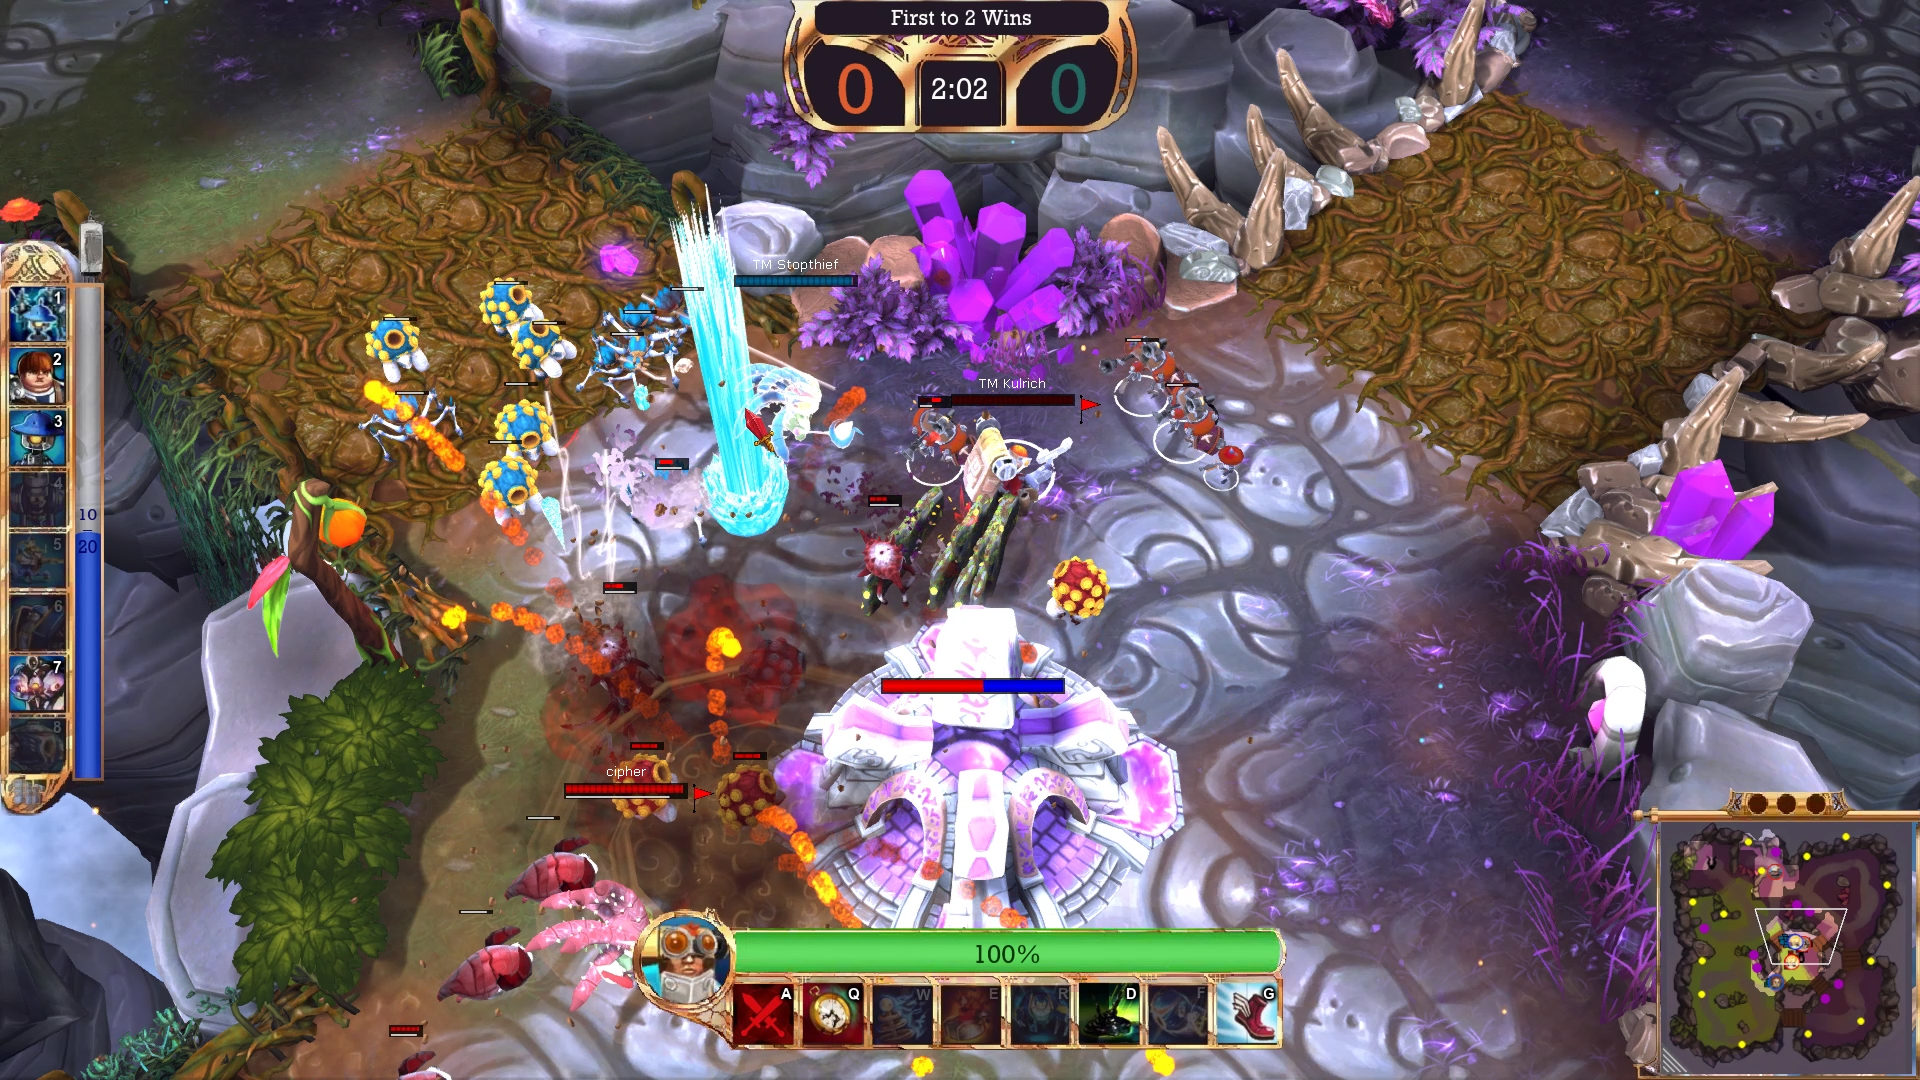 Team-based multiplayer RTS The Maestros gets a short open beta